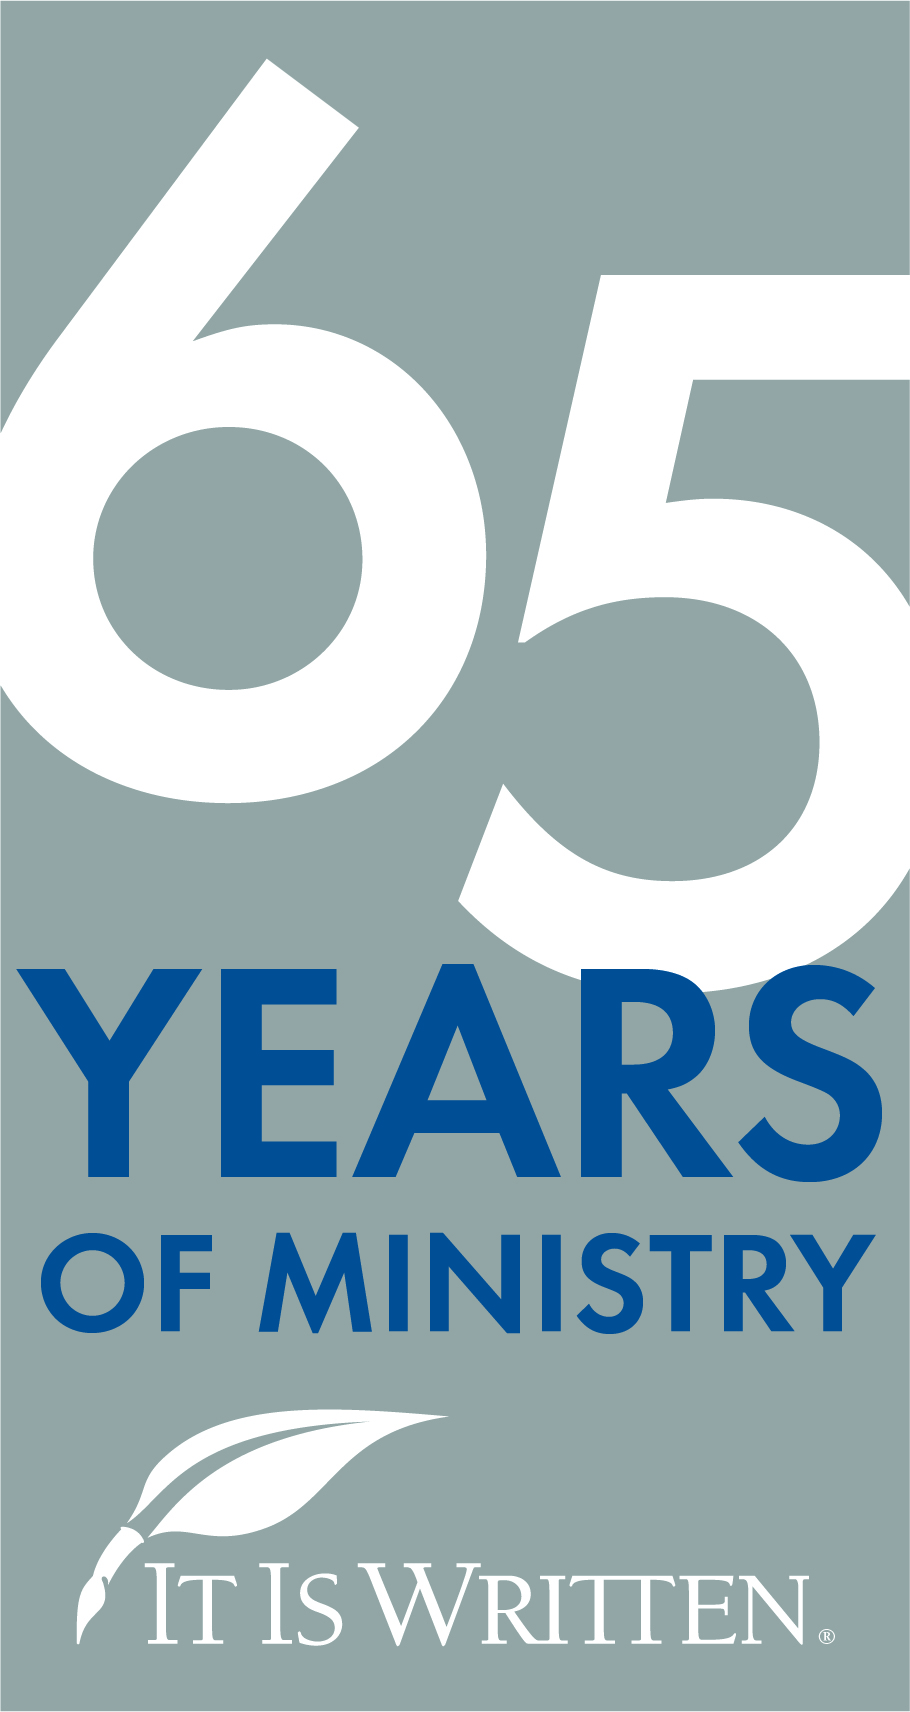 65 Years of Ministry